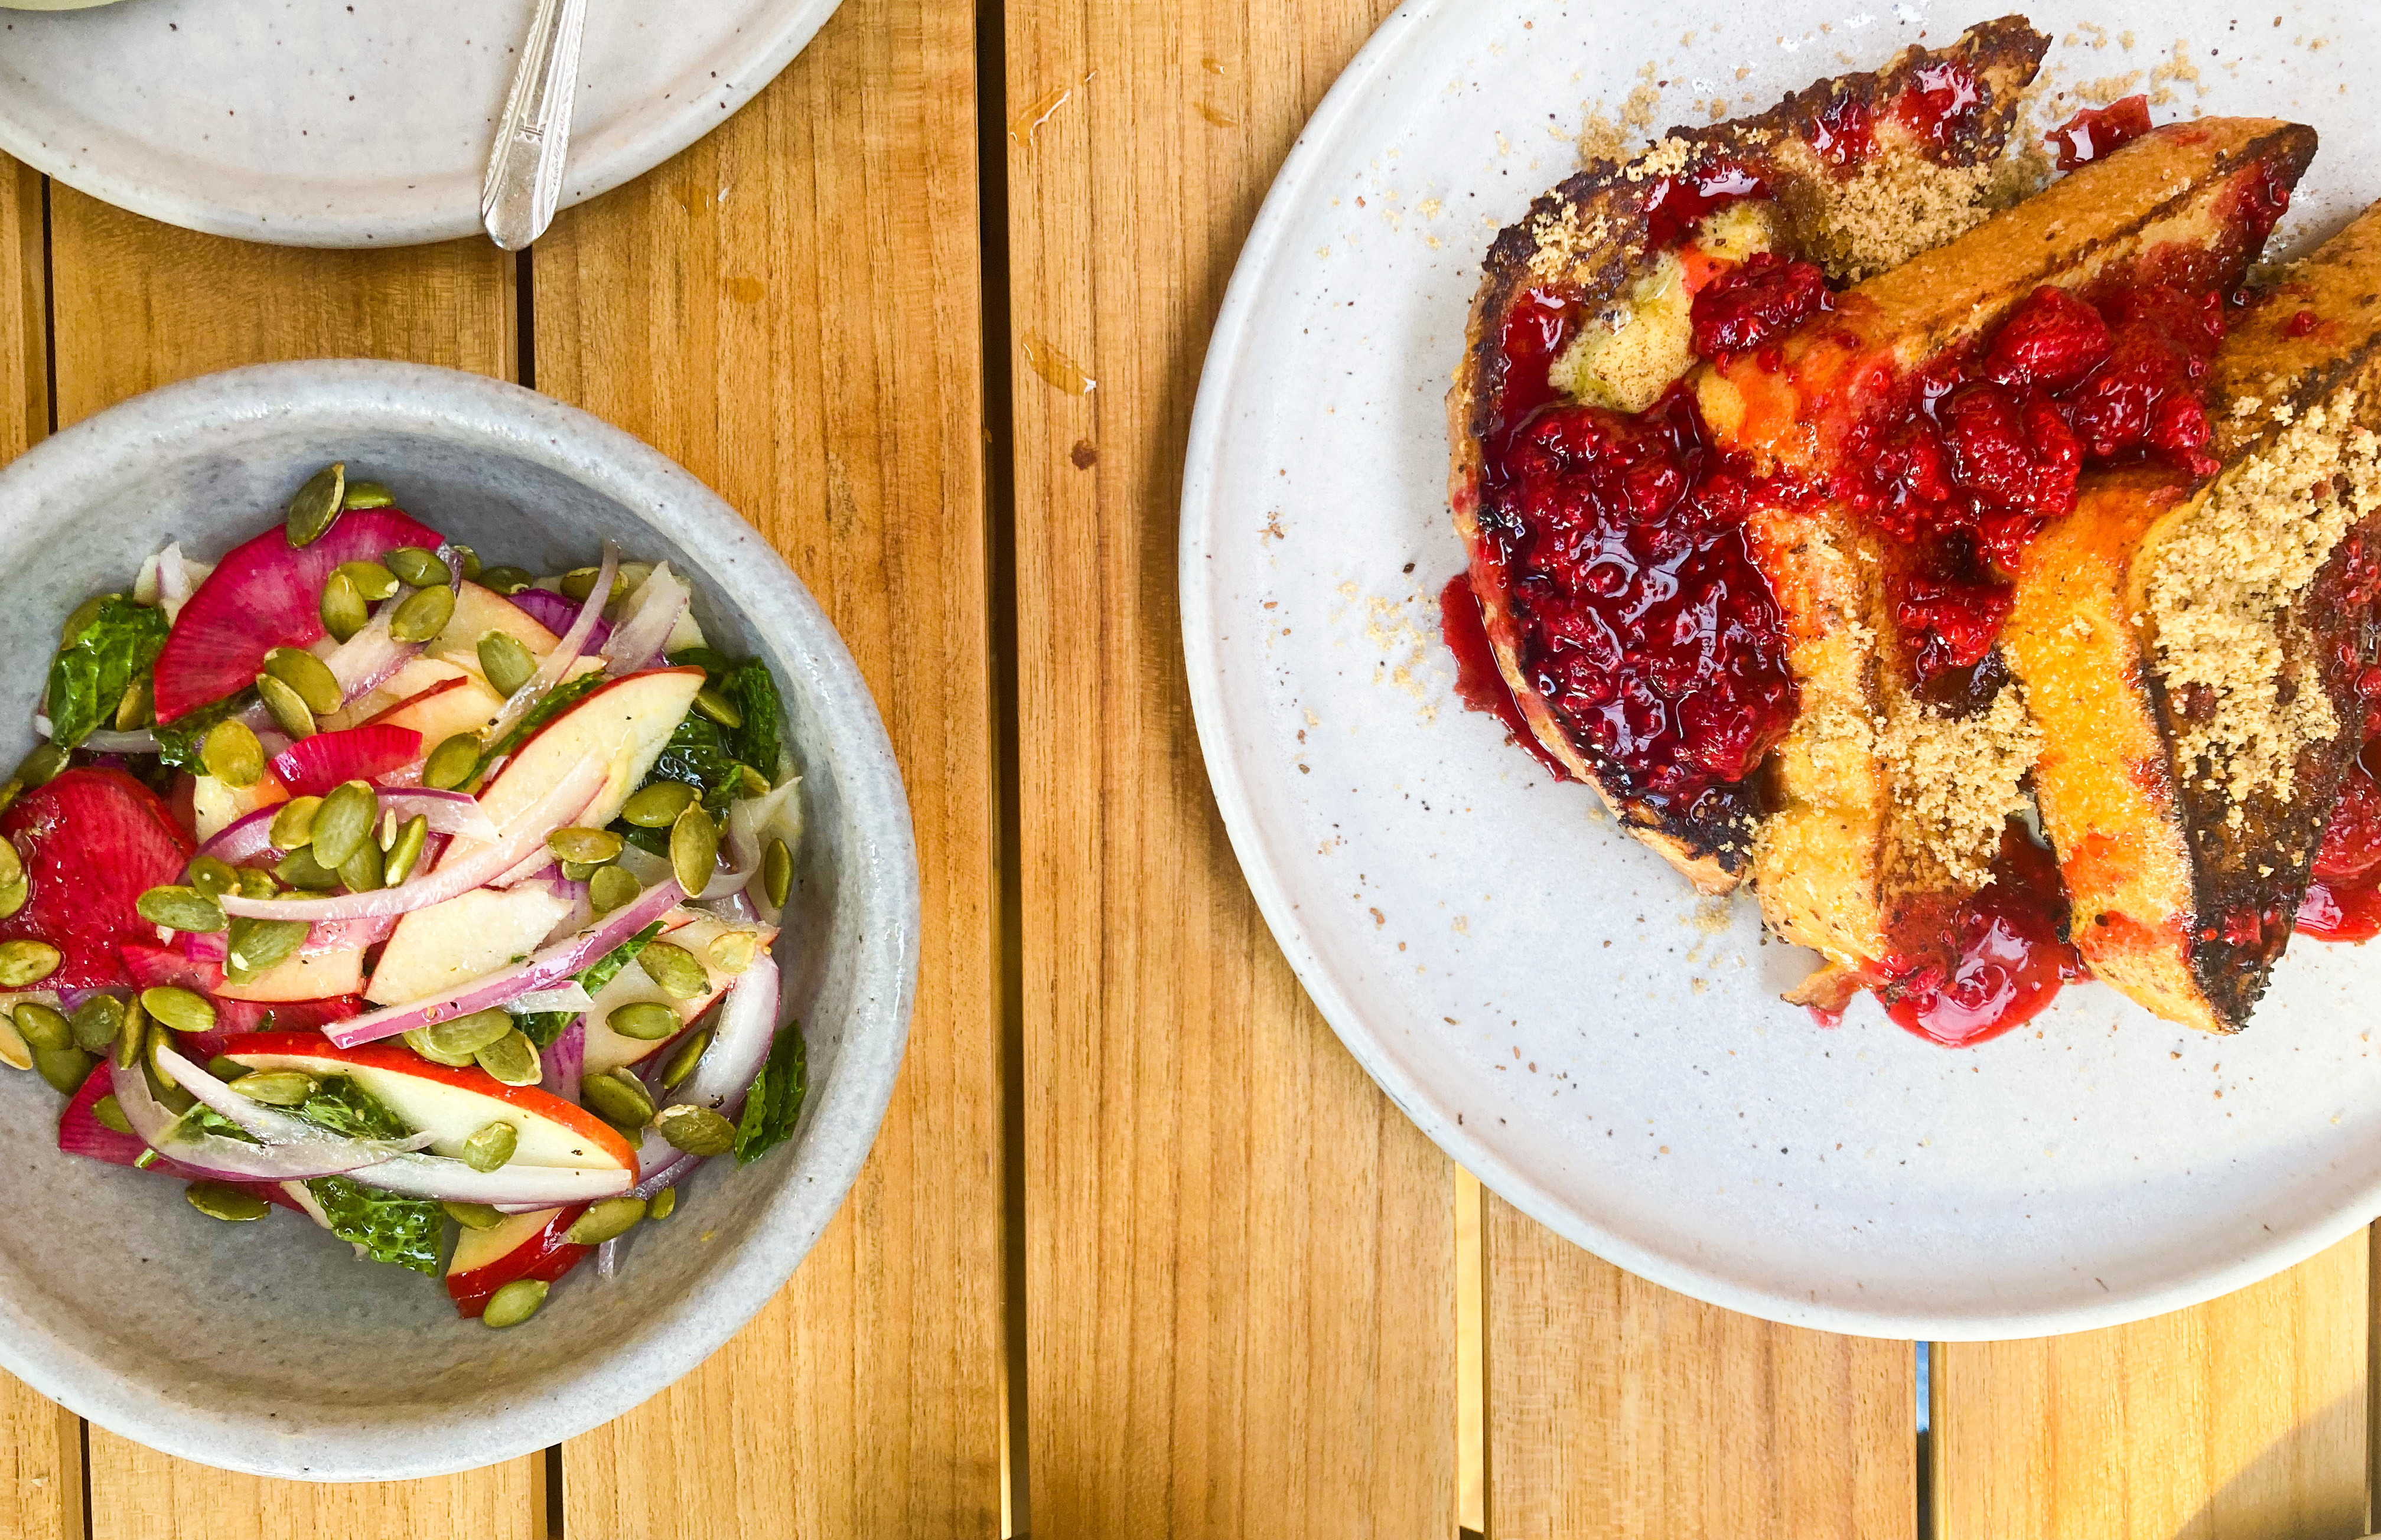 A plate with three slices of french toast, covered in raspberry compote, sits on a wooden table outside Sweedeedee in Portland, Oregon. Next to it, a bowl of sliced apples, radishes, and pepitas sits.